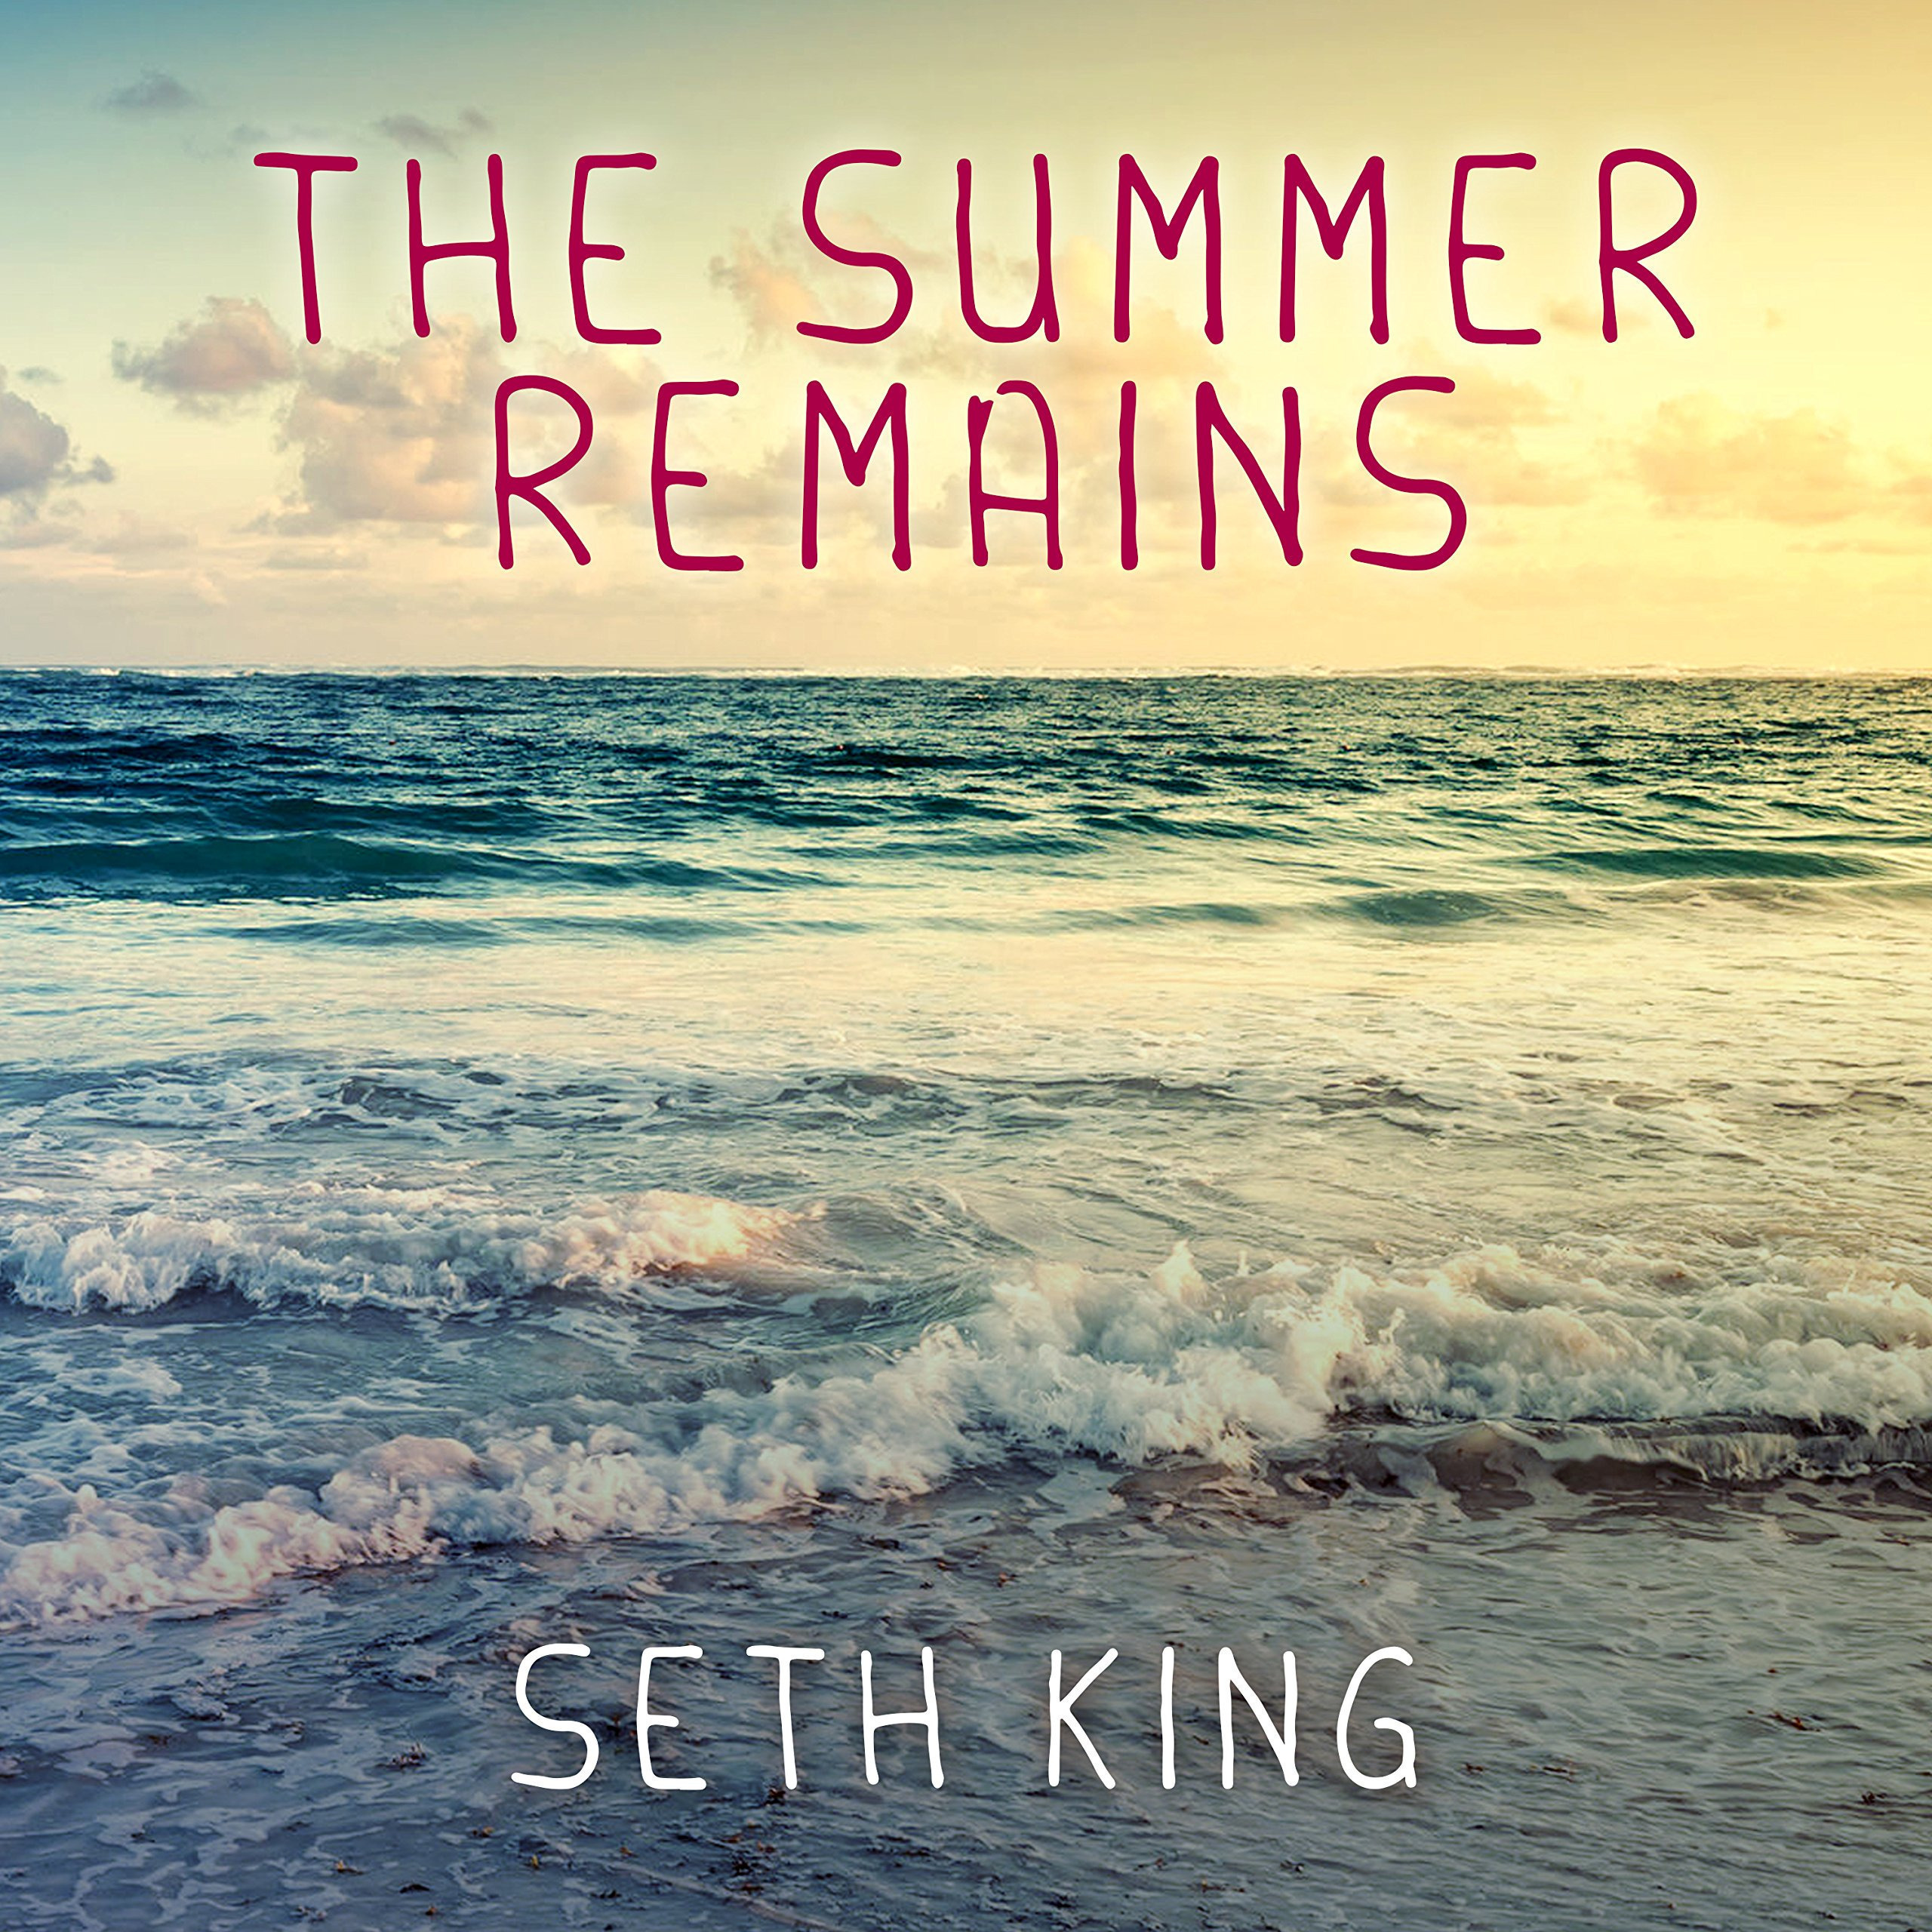 Printable The Summer Remains Audiobook Cover Art